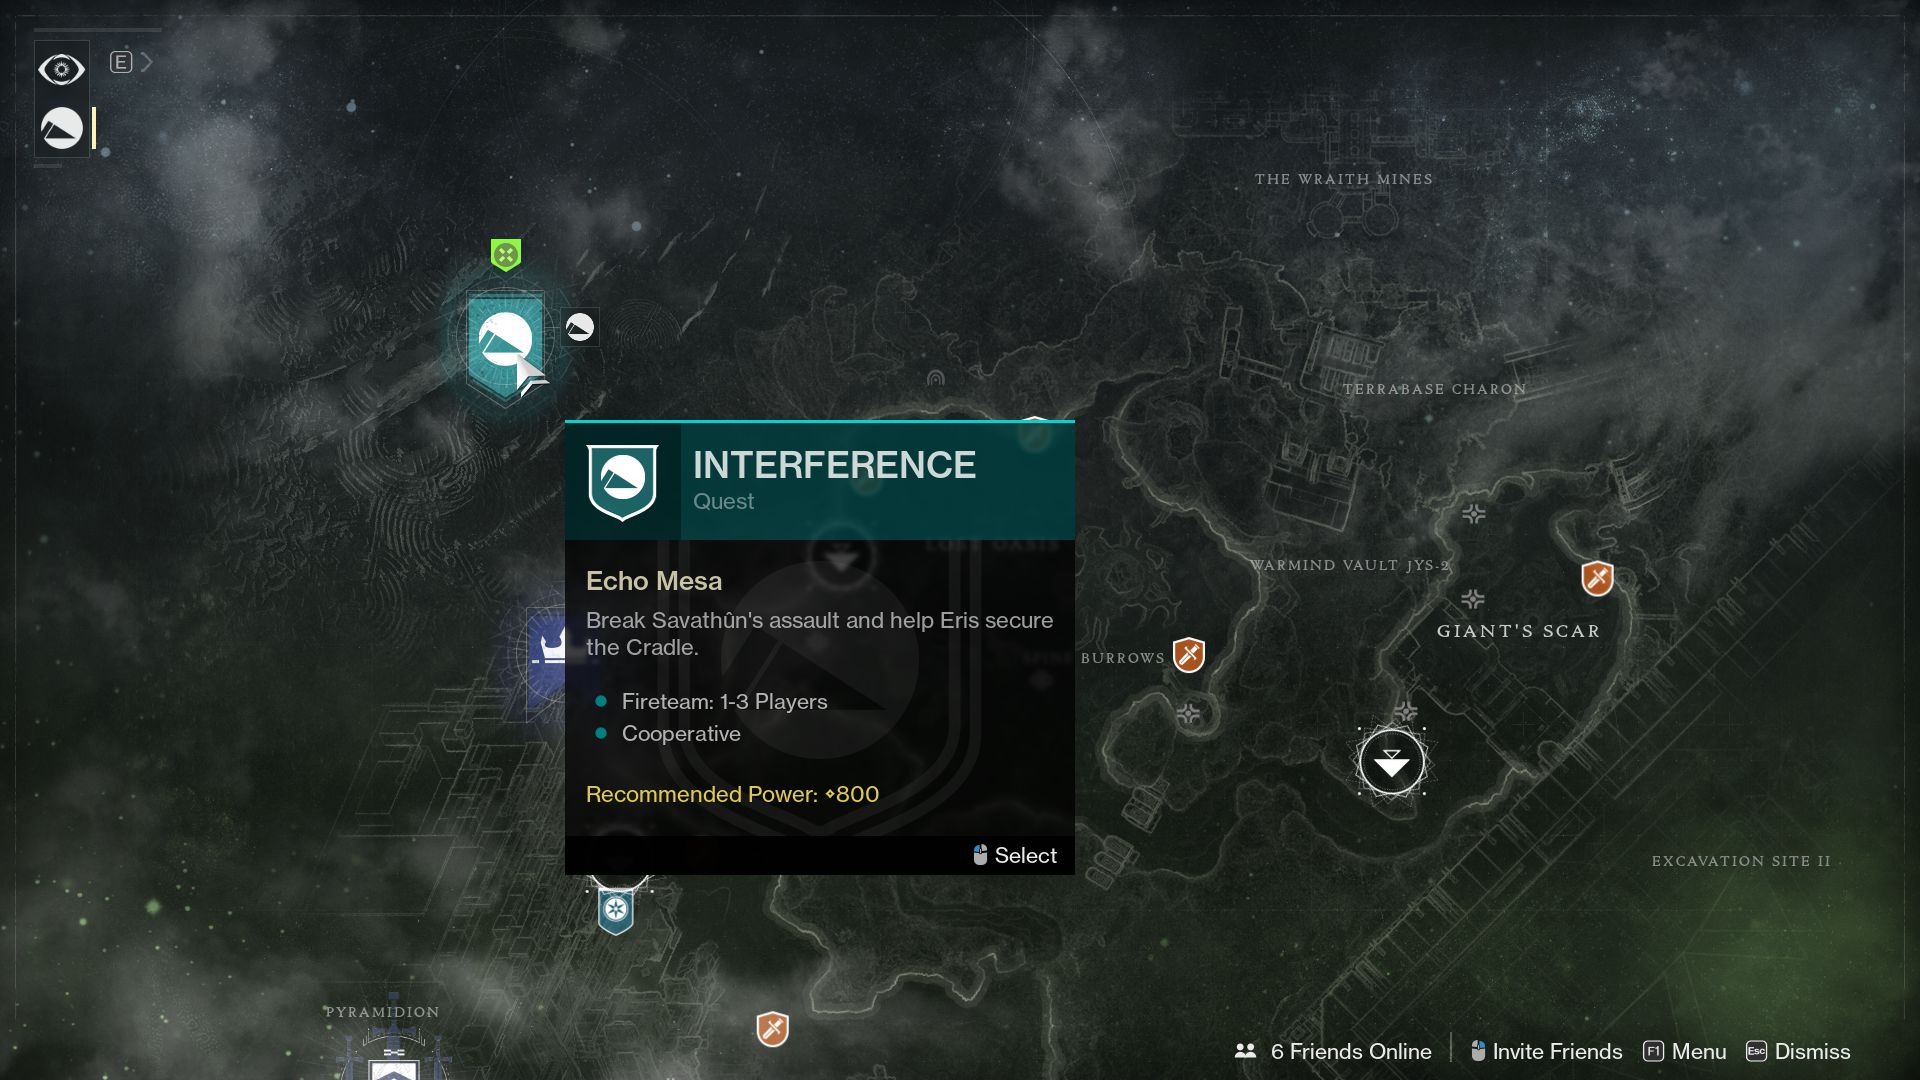 Image showing the map location of the Interference quest in Destiny 2.